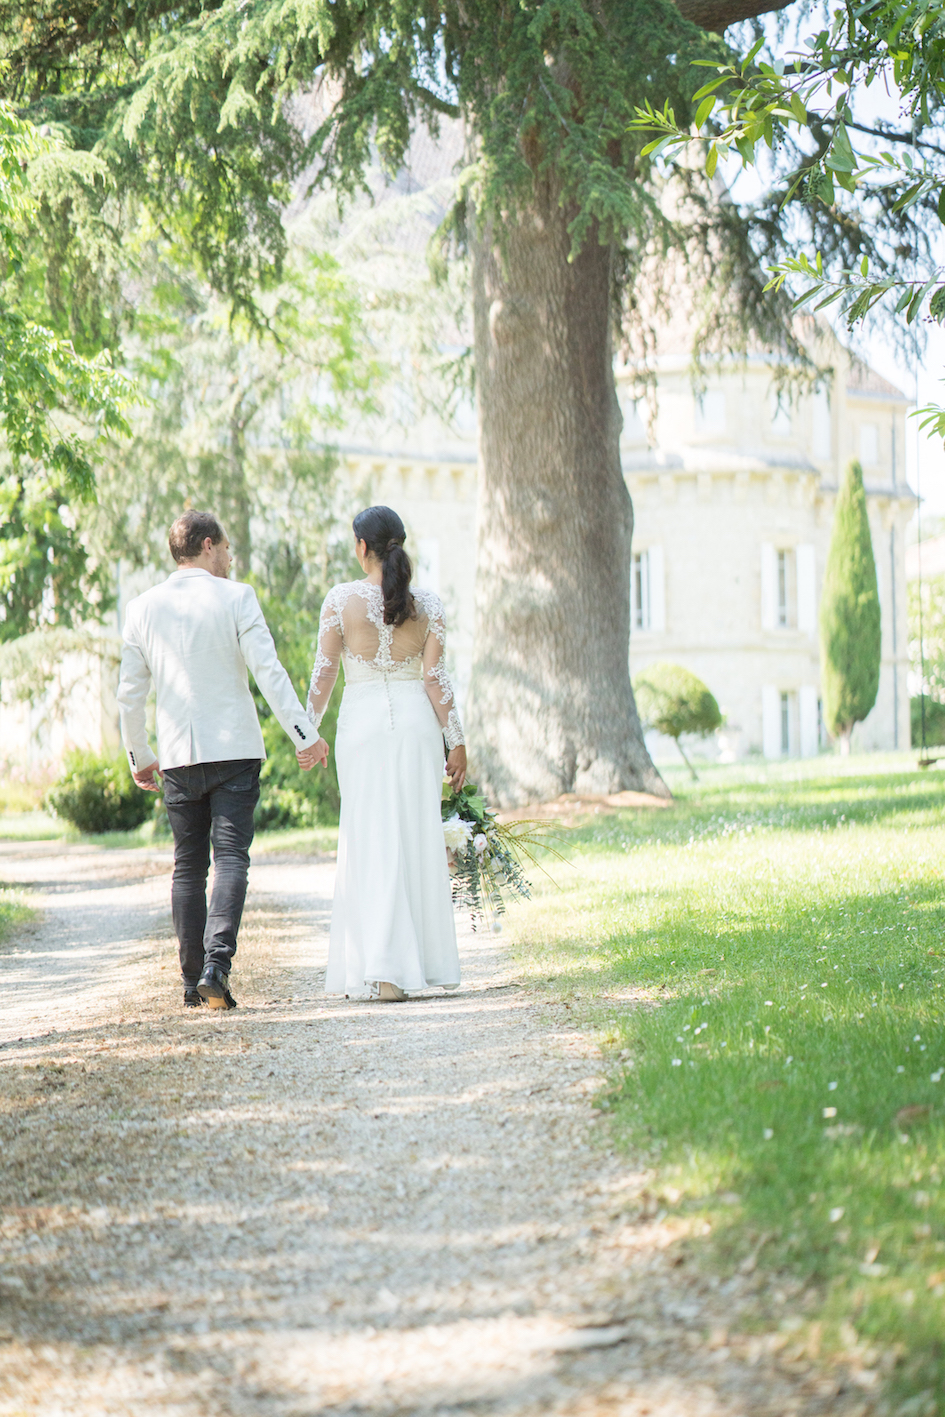 planning a wedding in france - bride and groom holding hands